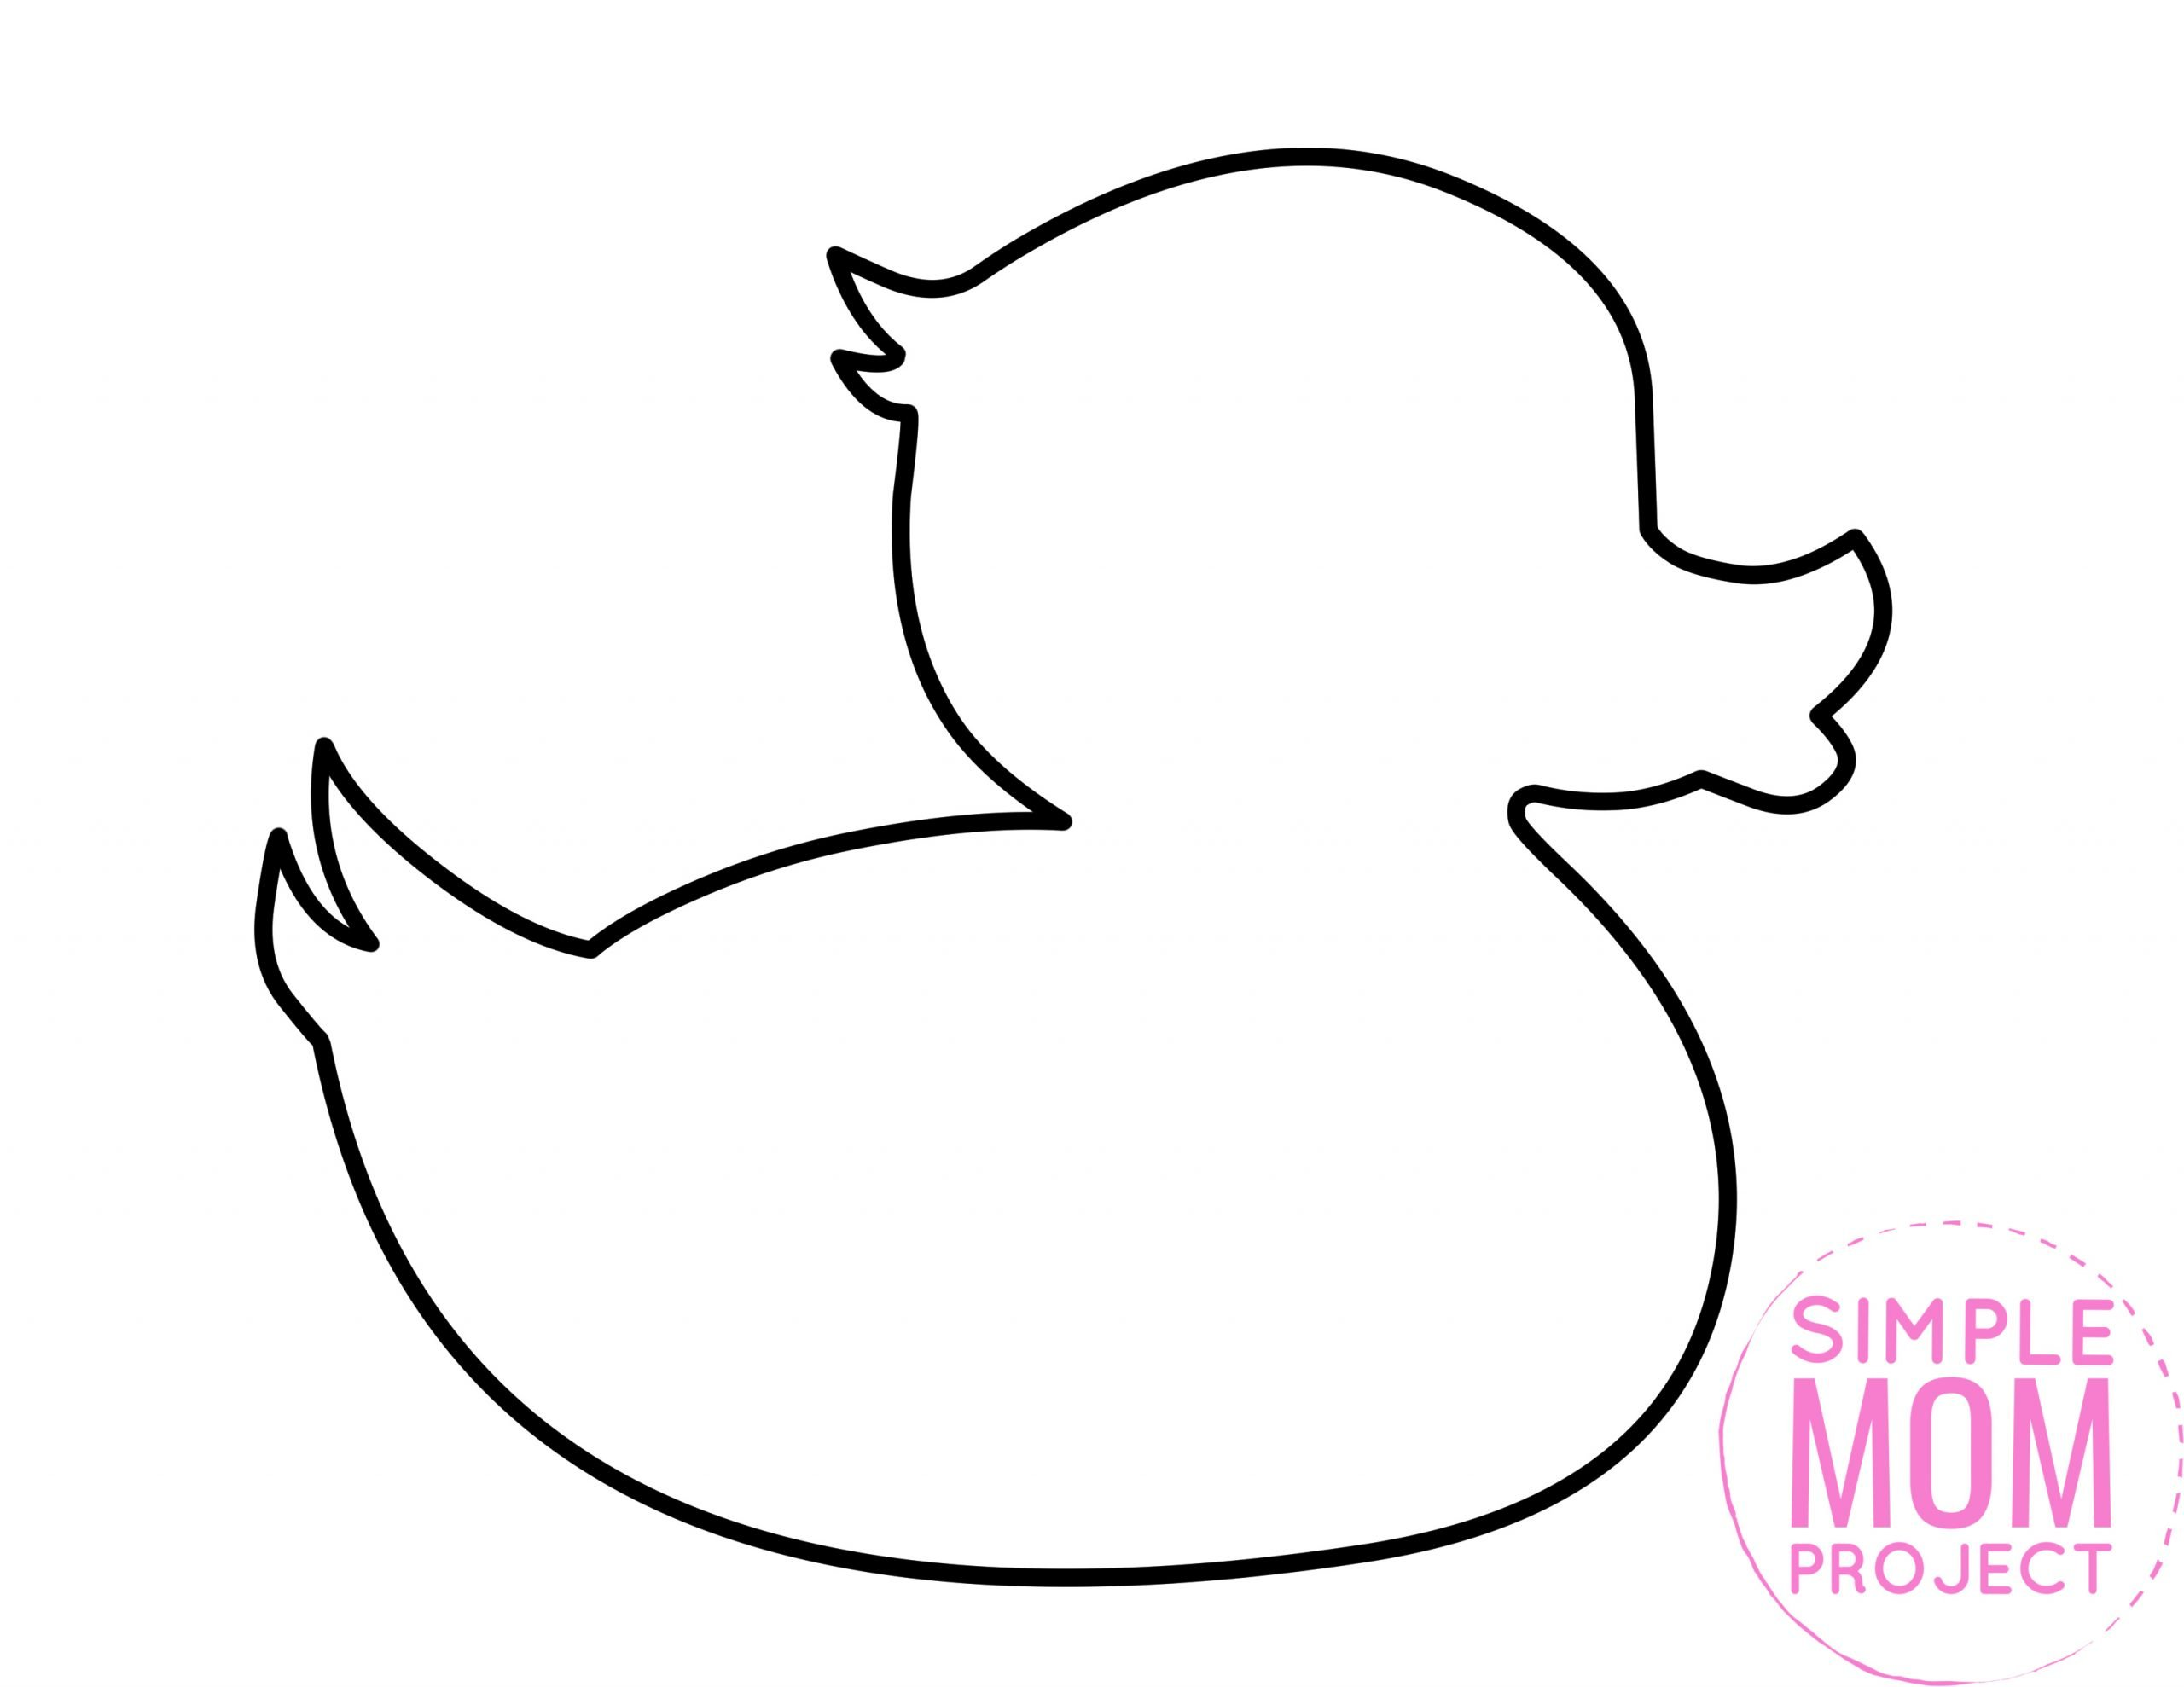 Free Printable Spring and Summer duck template silhouette for kids preschoolers and toddlers